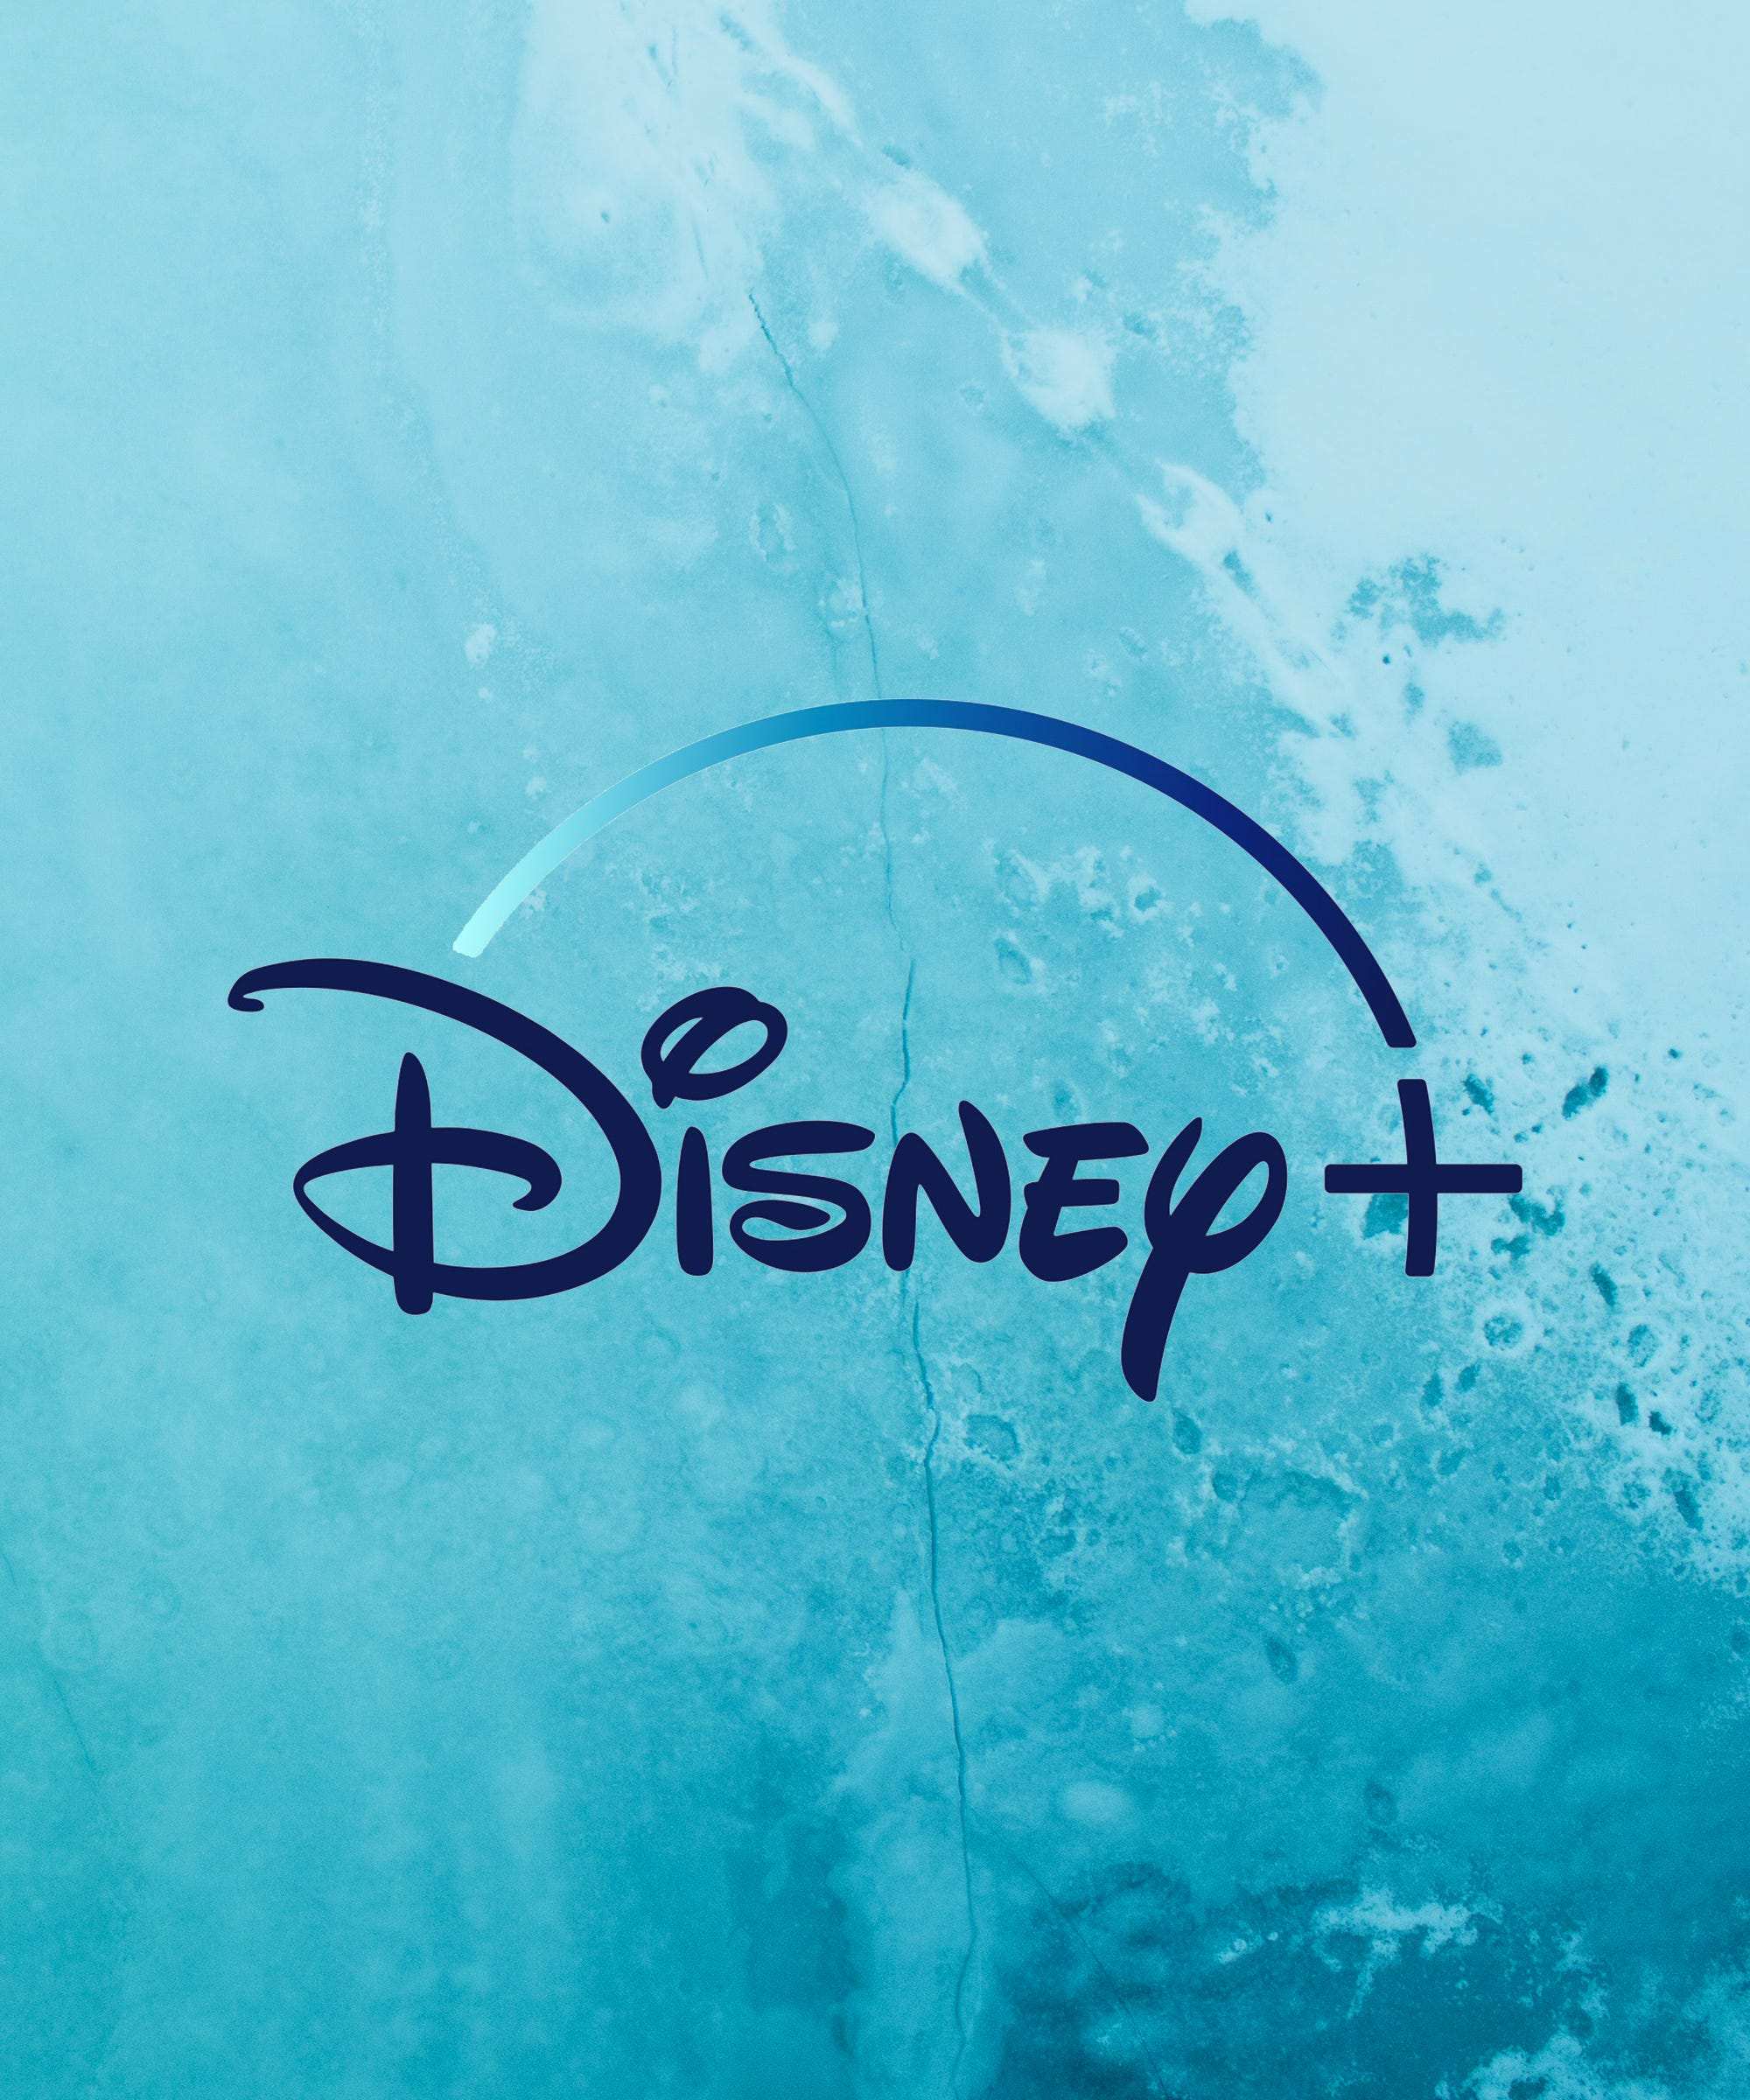 New D23 Disney+ Series Announcements Include A Lizzie McGuire Revival & She-Hulk